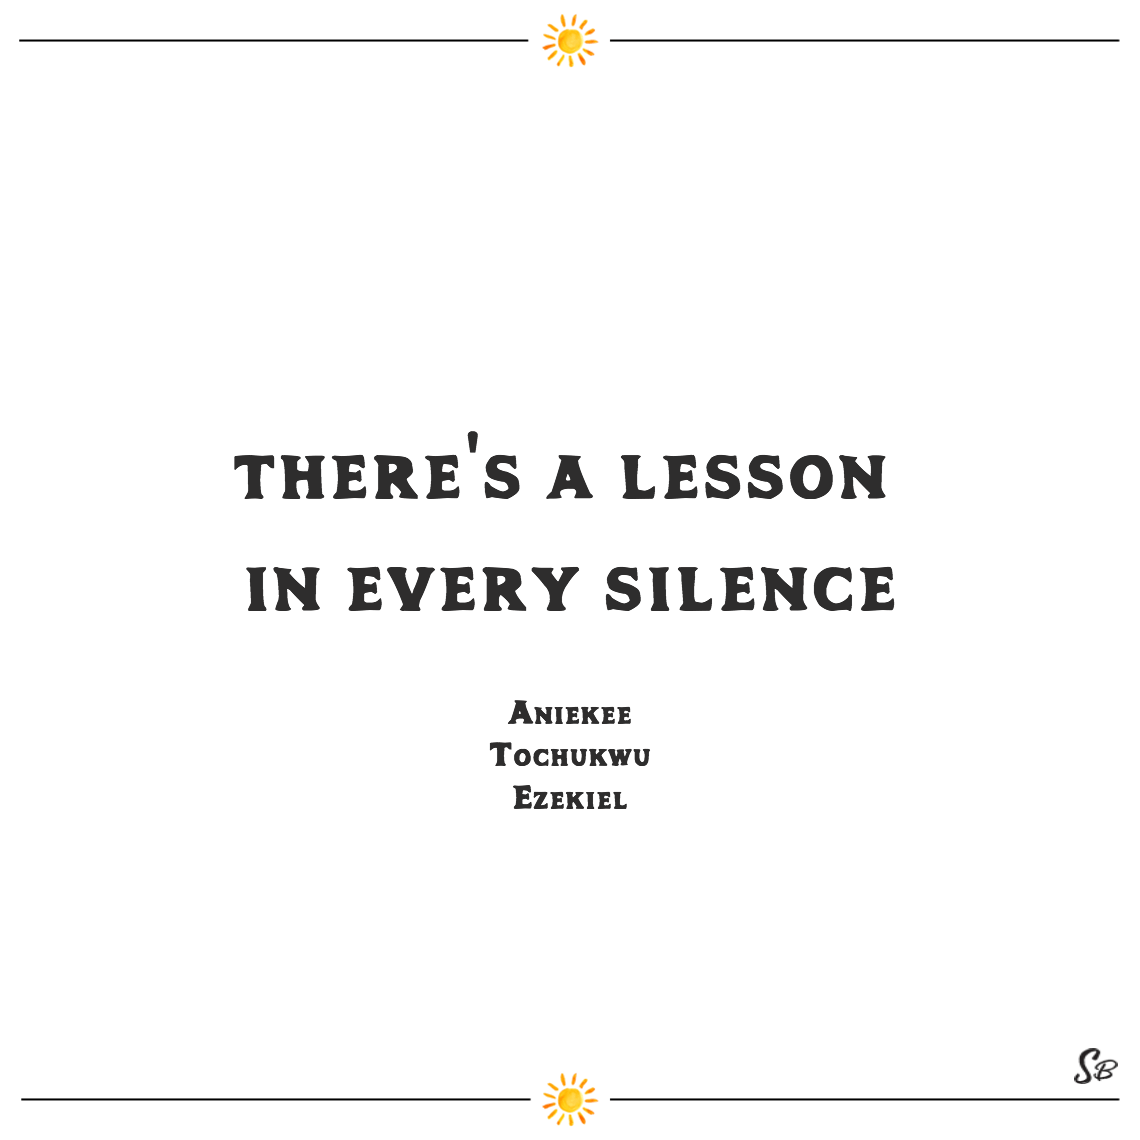 There's a lesson in every silence aniekee tochukwu ezekiel